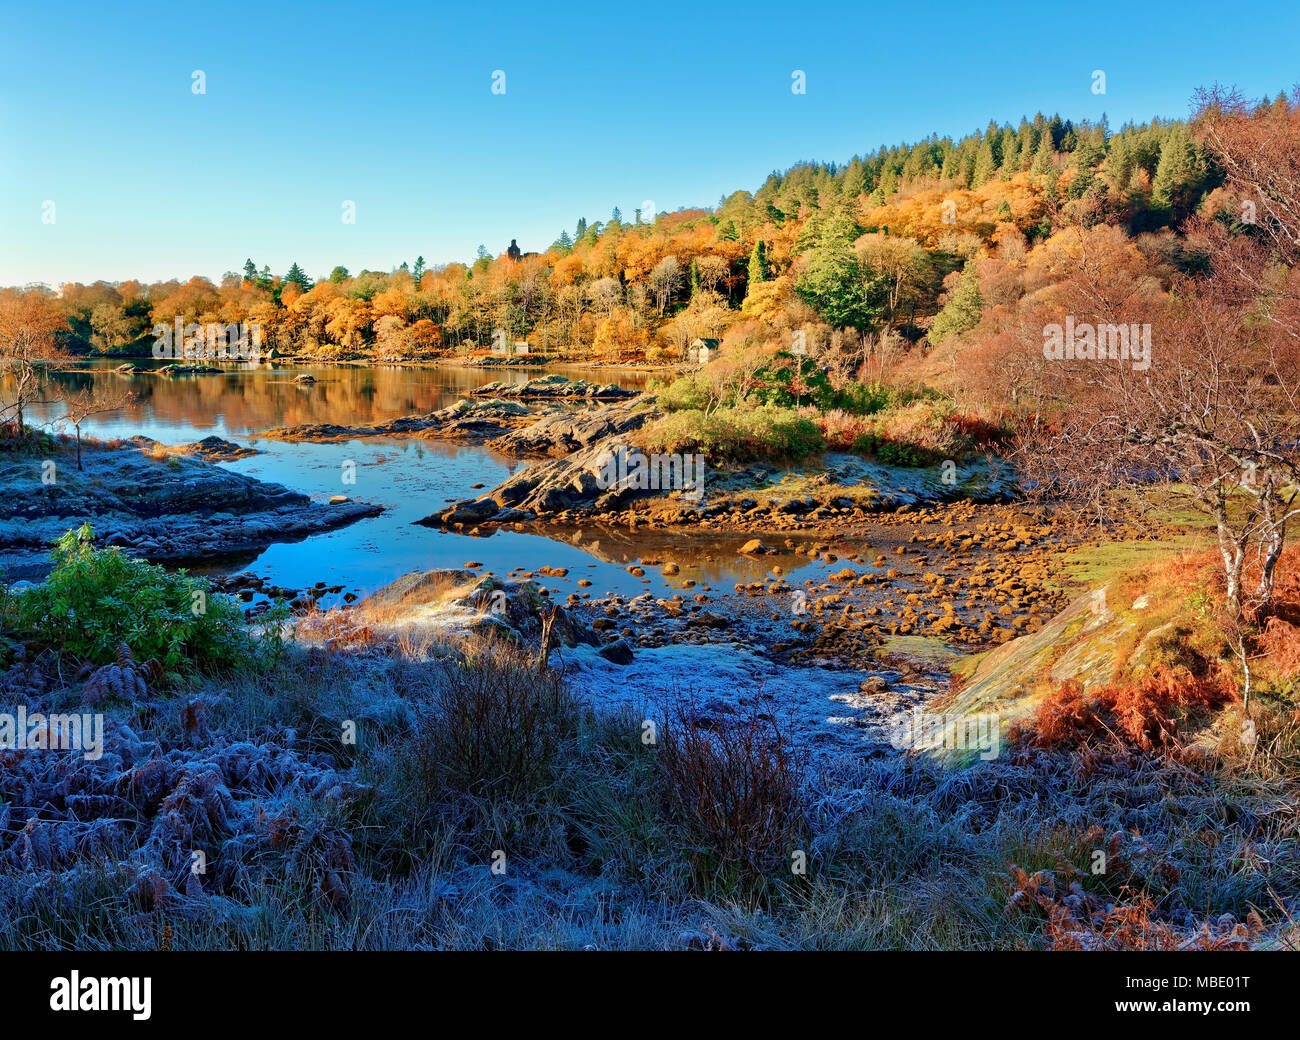 A sunny, autumn view of Loch Sunart in the Scottish Highlands as the first signs of winter appear. - Stock Image